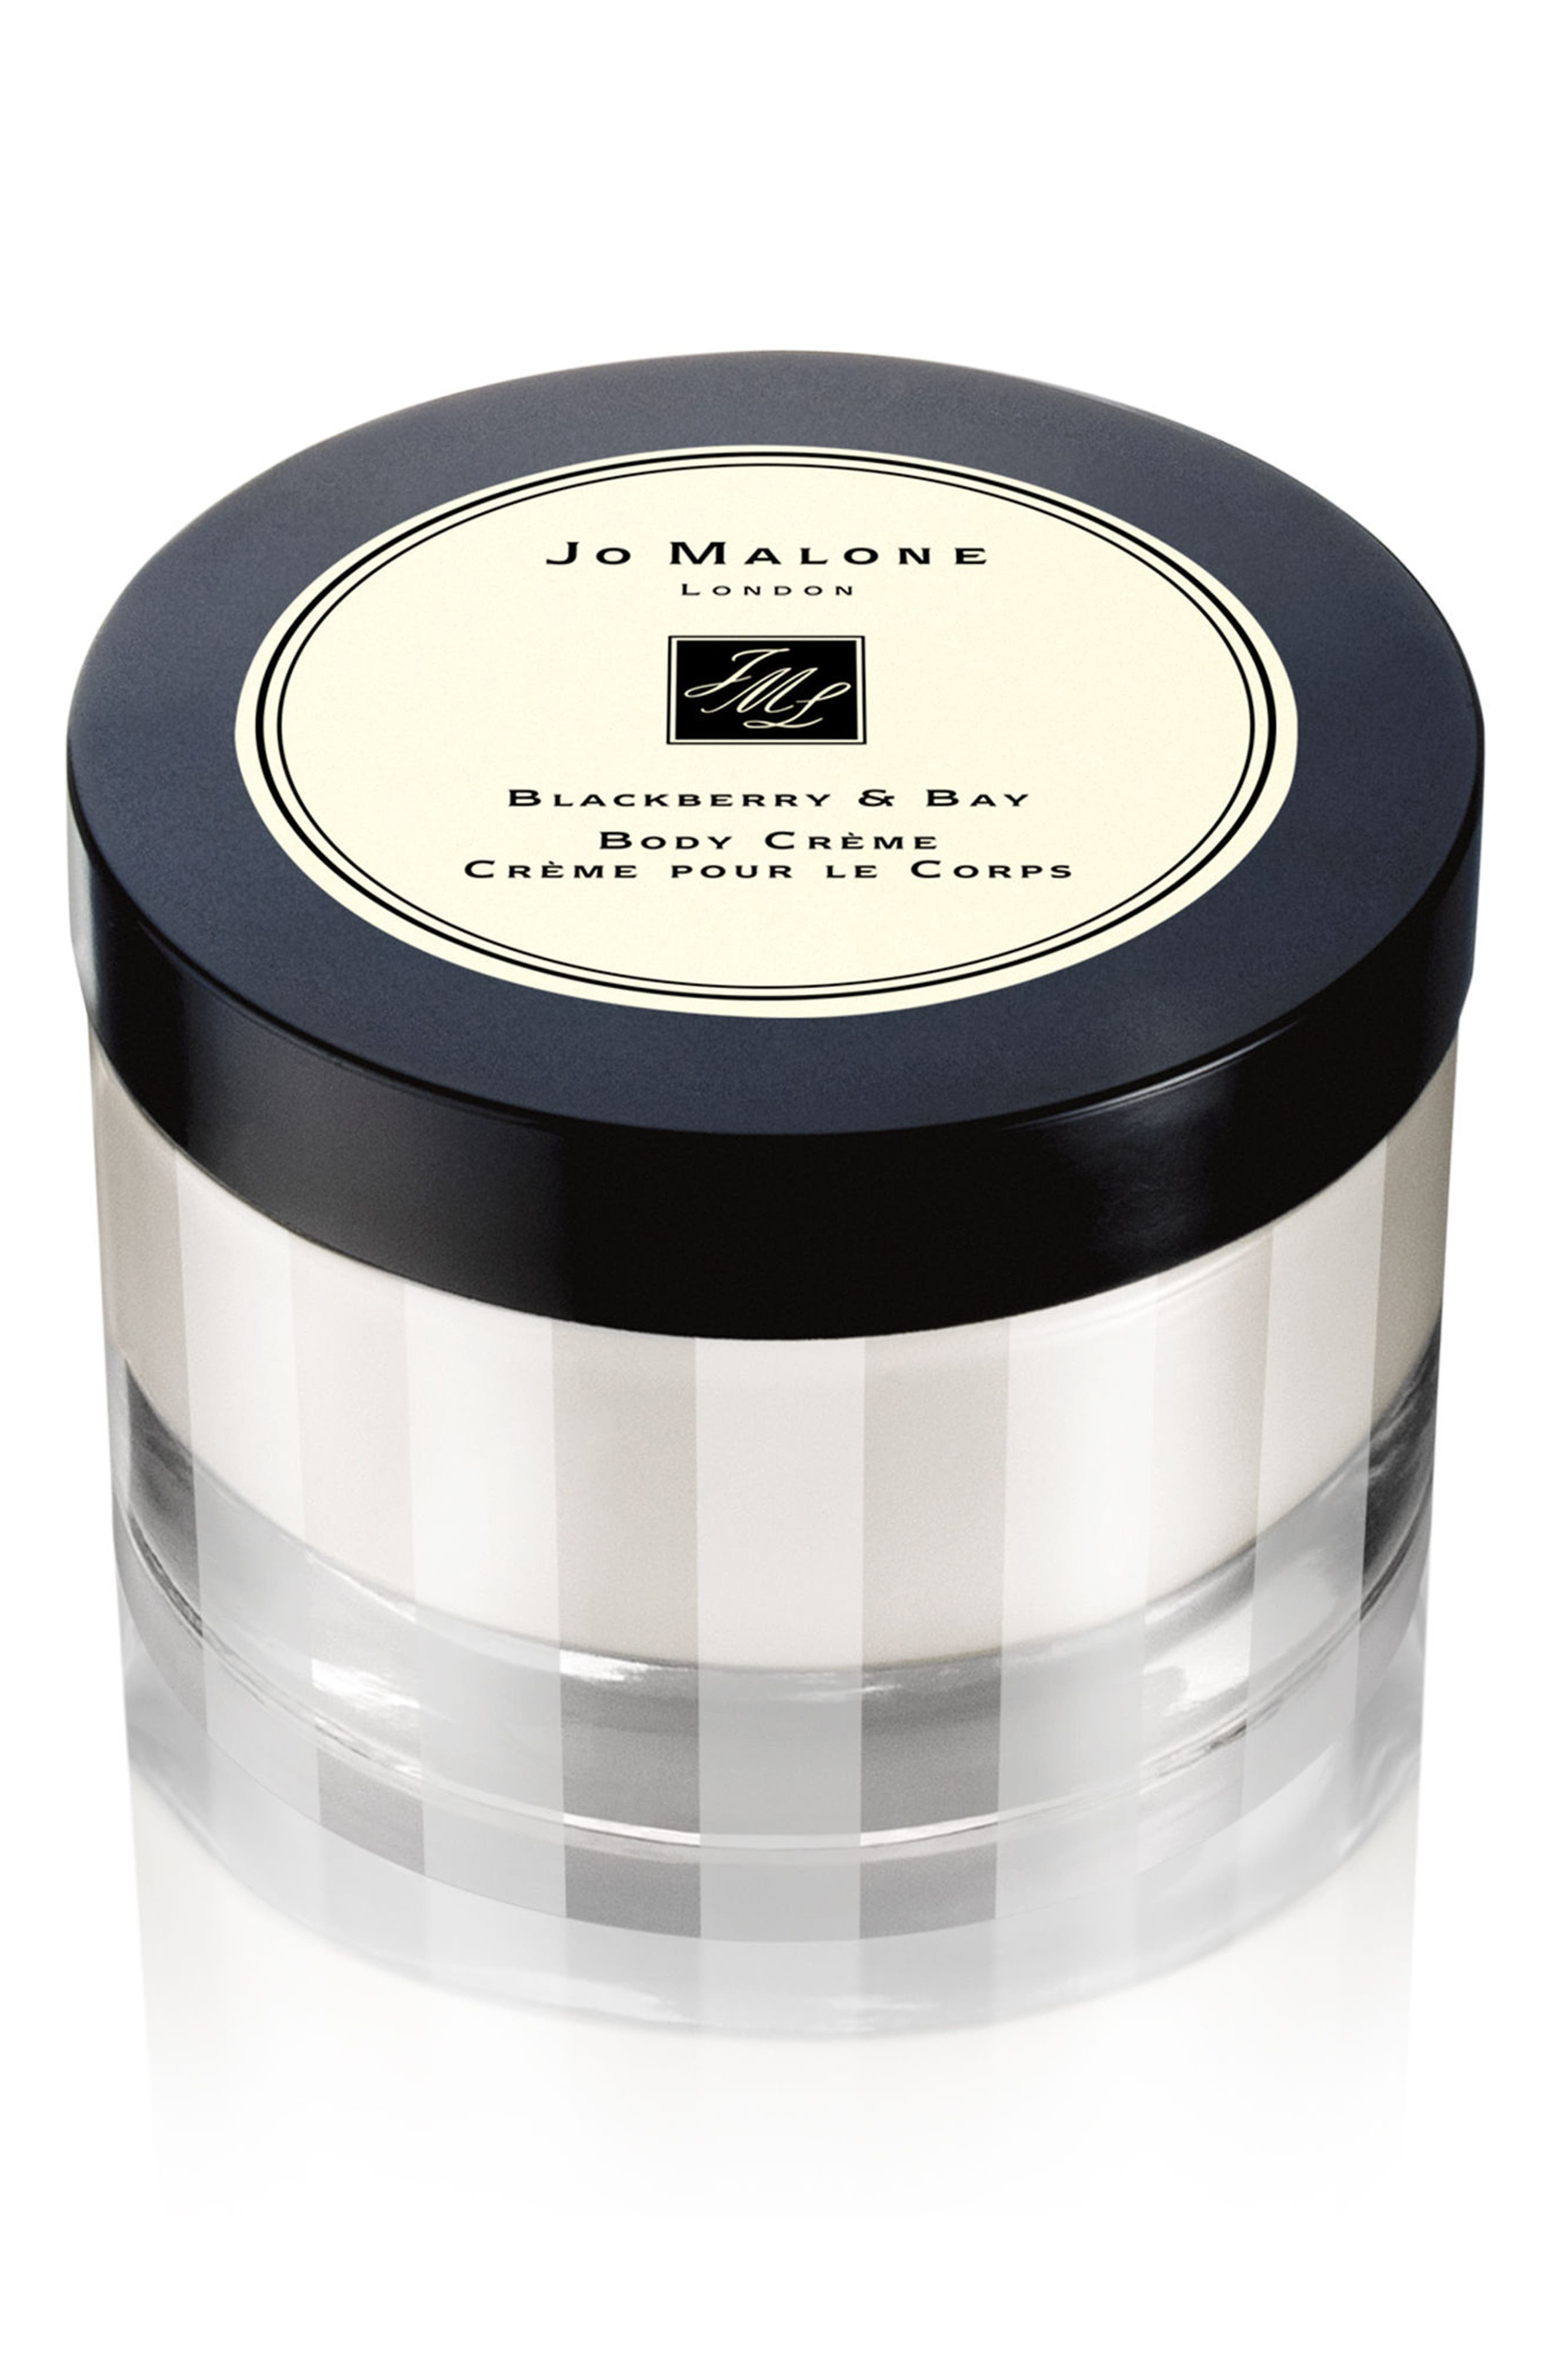 Jo Malone London™ Blackberry & Bay Body Crème